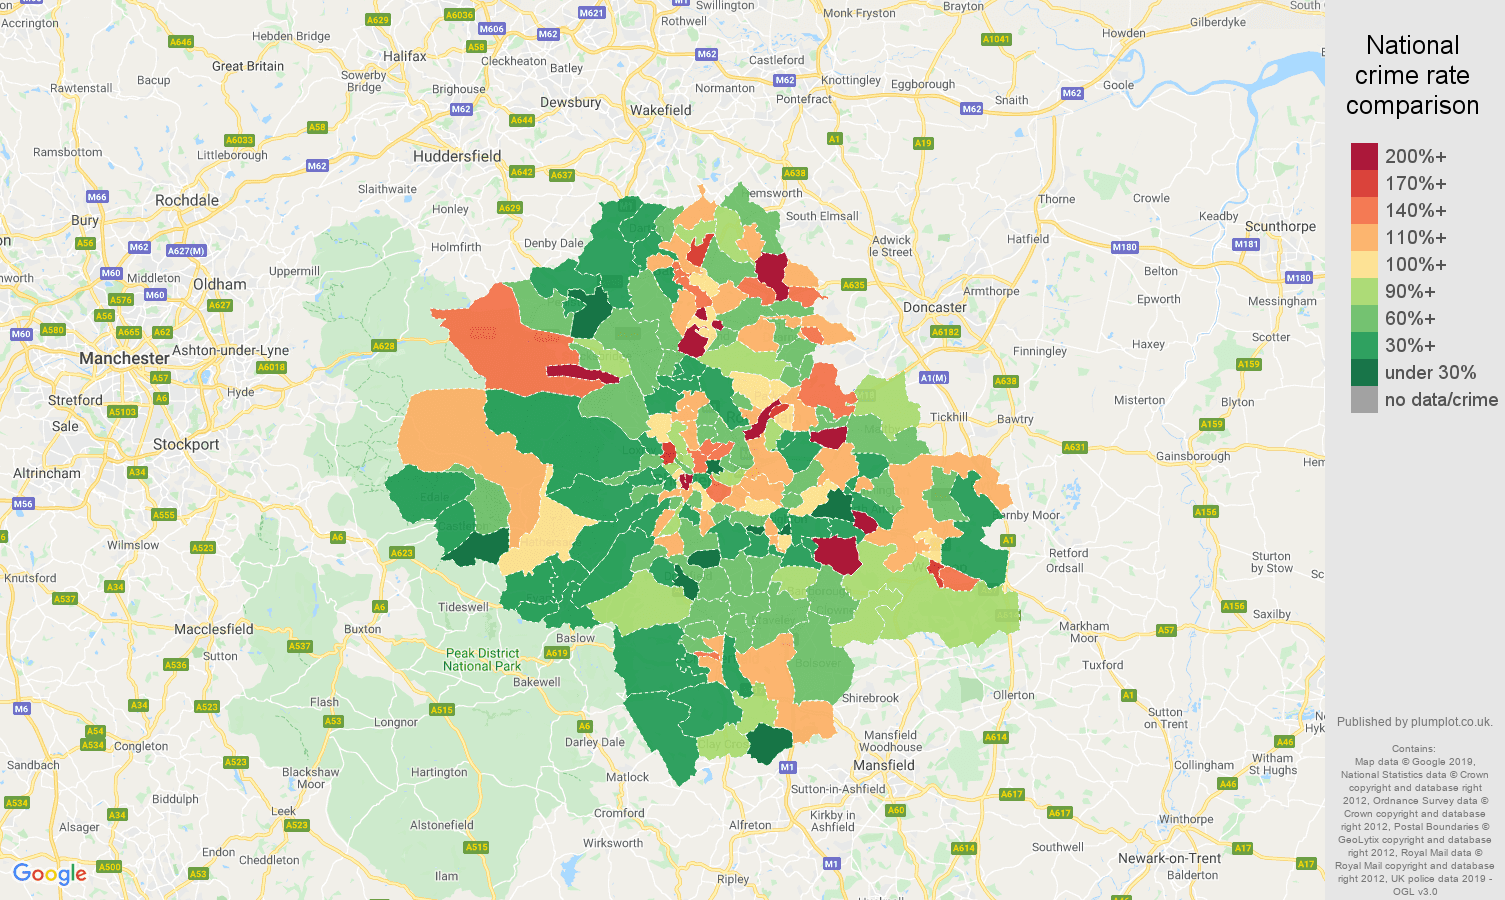 Sheffield other theft crime rate comparison map